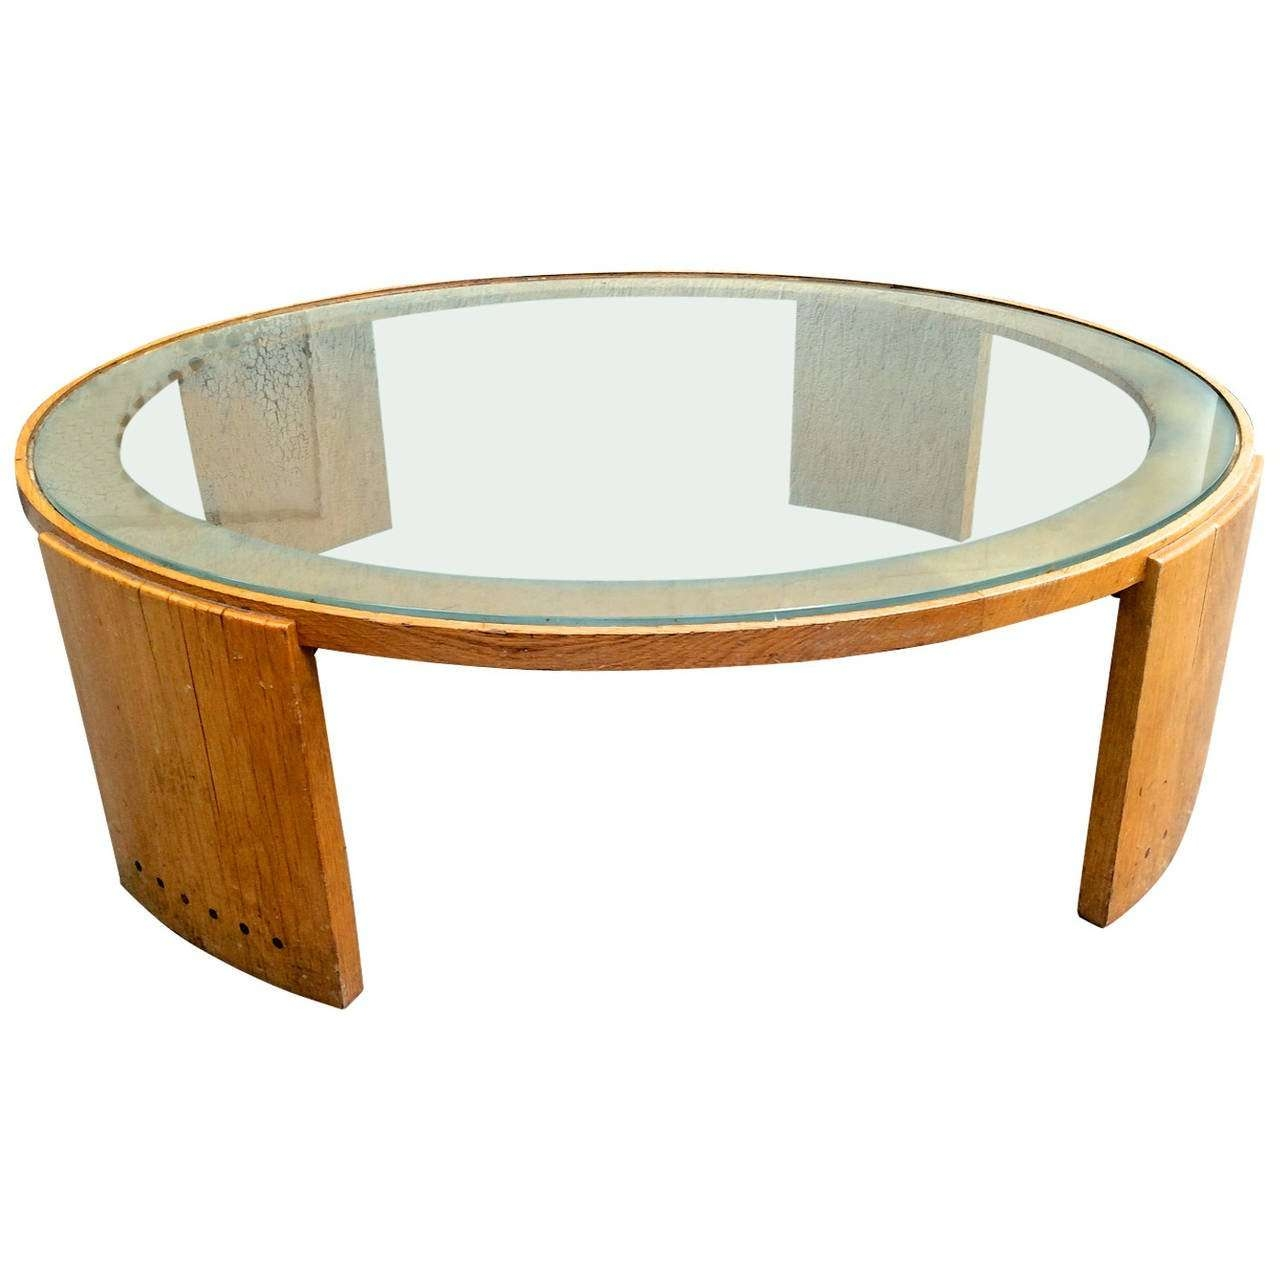 Jacques Adnet Very Large Round Coffee Table In Oak And Glass Top Throughout Most Up To Date Very Large Coffee Tables (View 11 of 20)